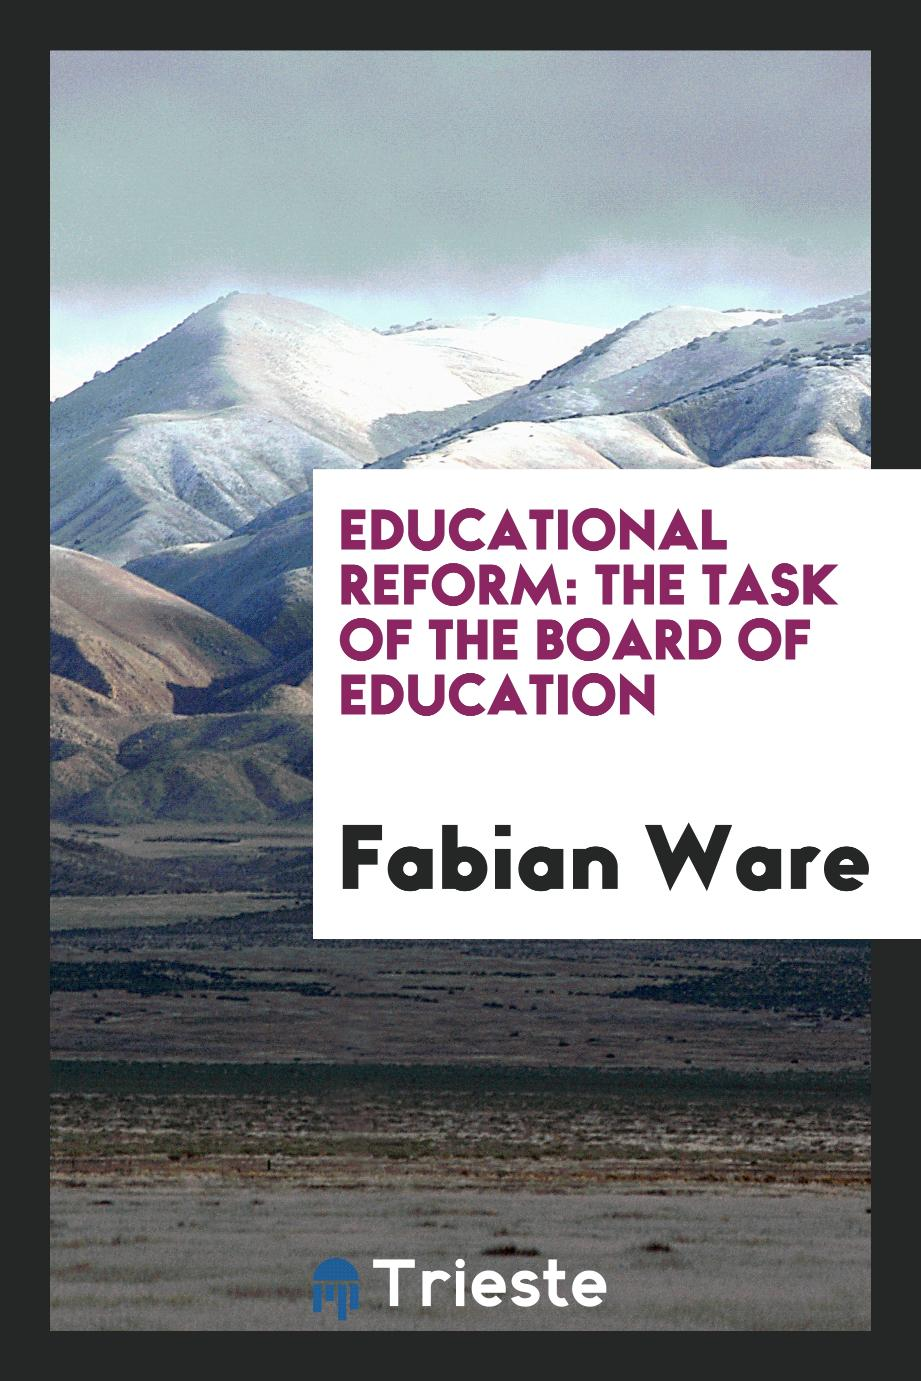 Educational Reform: The Task of the Board of Education